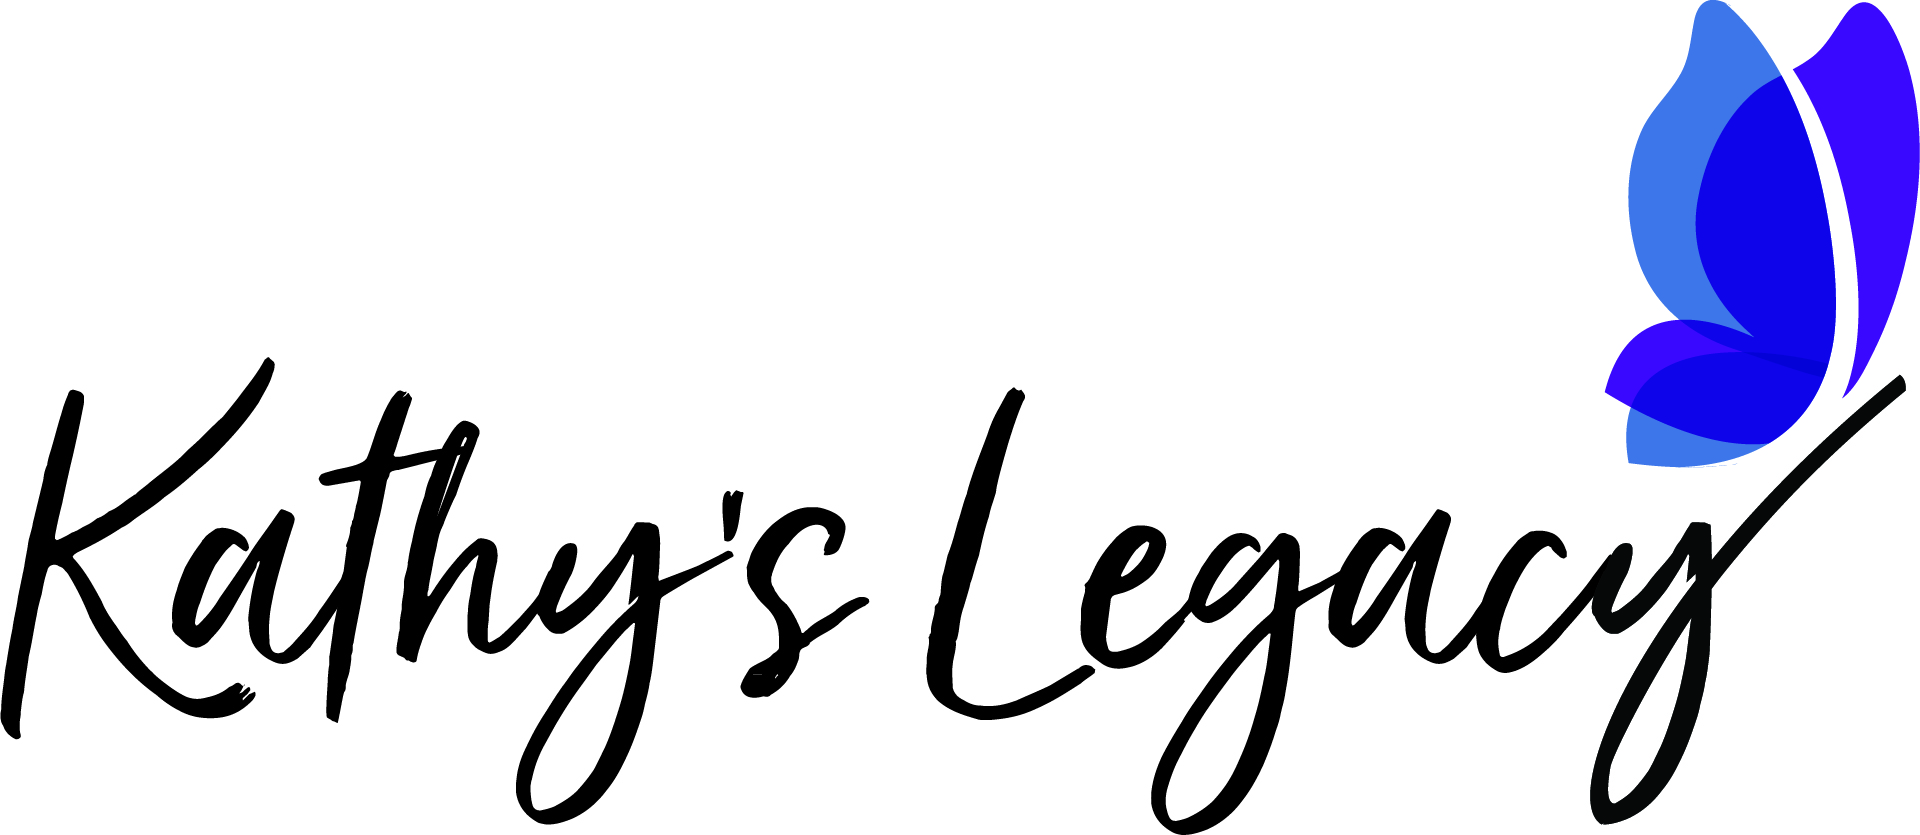 Kathy's Legacy Foundation Golf Tournament logo